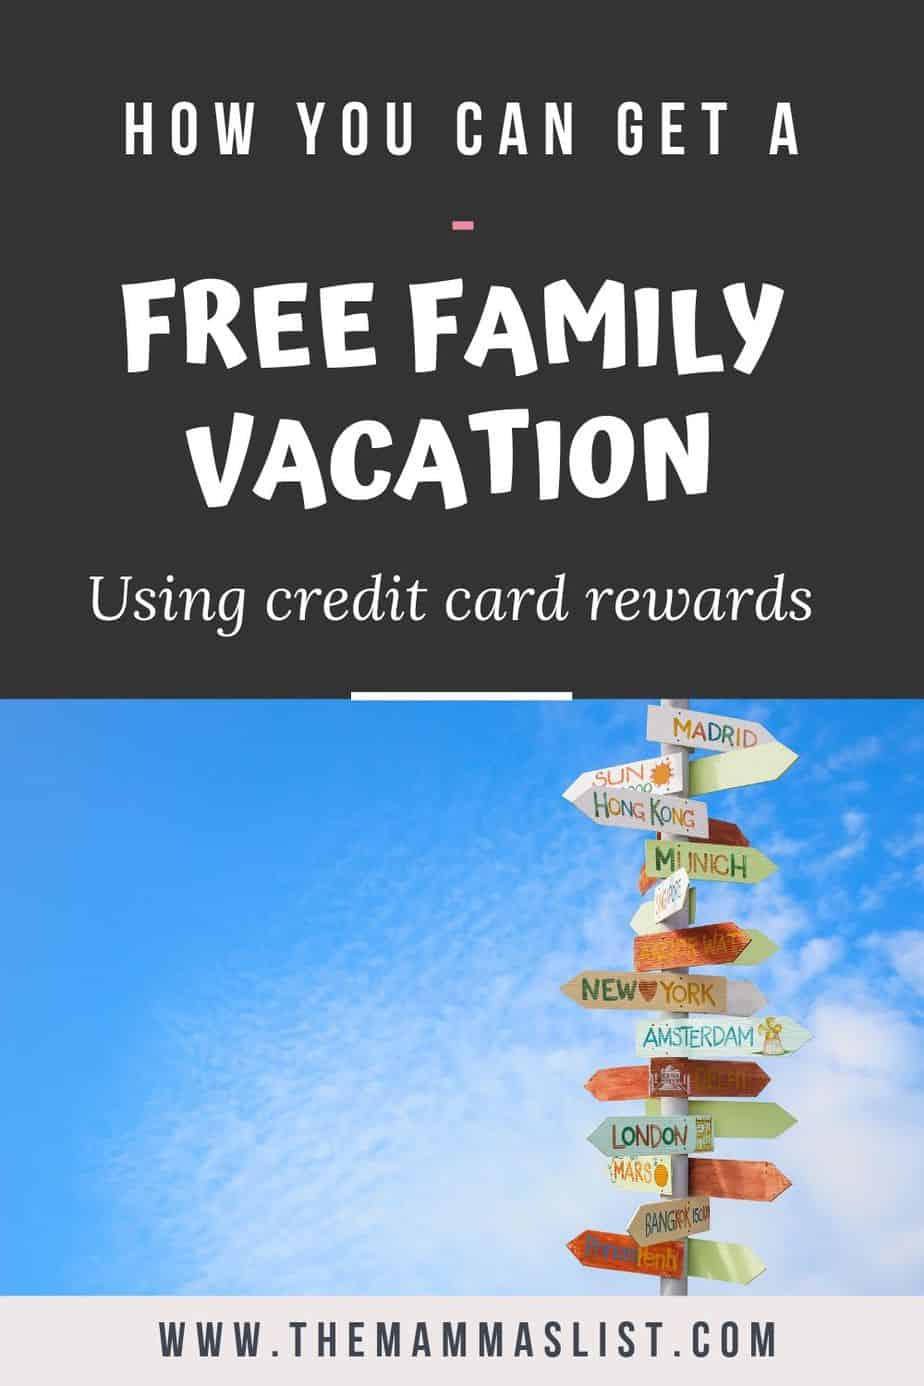 Travel hacking is an awesome way to save money and go on a family vacation for FREE! If you're budgeting, trying to save money or don't have a lot to spend but still love to travel, travel rewards, credit card points, and travel hacking are the best way to go on a free (or nearly free) vacation every year.